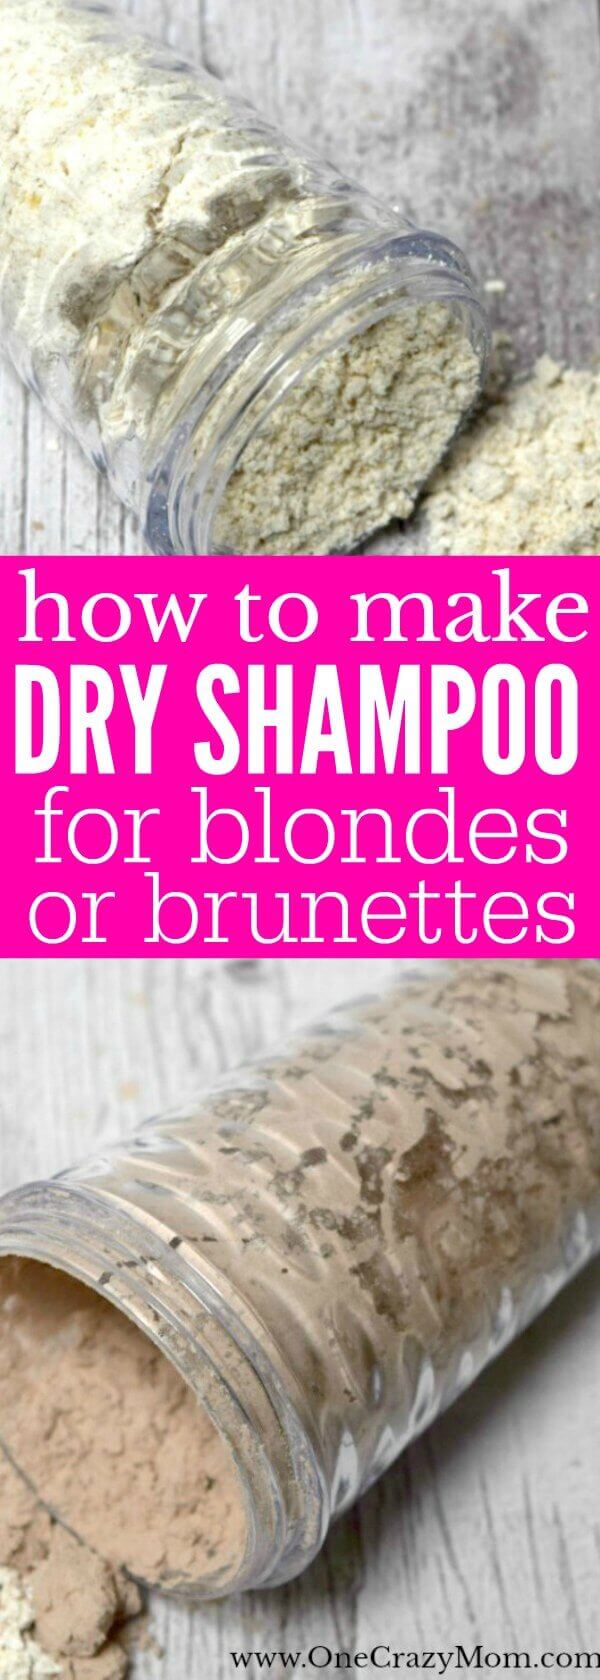 Whether you are blonde or brunette, we have the perfect DIY Dry Shampoo for you to try. Don't pay too much for dry shampoo when you can make homemade dry shampoo. Learn how to make dry shampoo and save time and money!